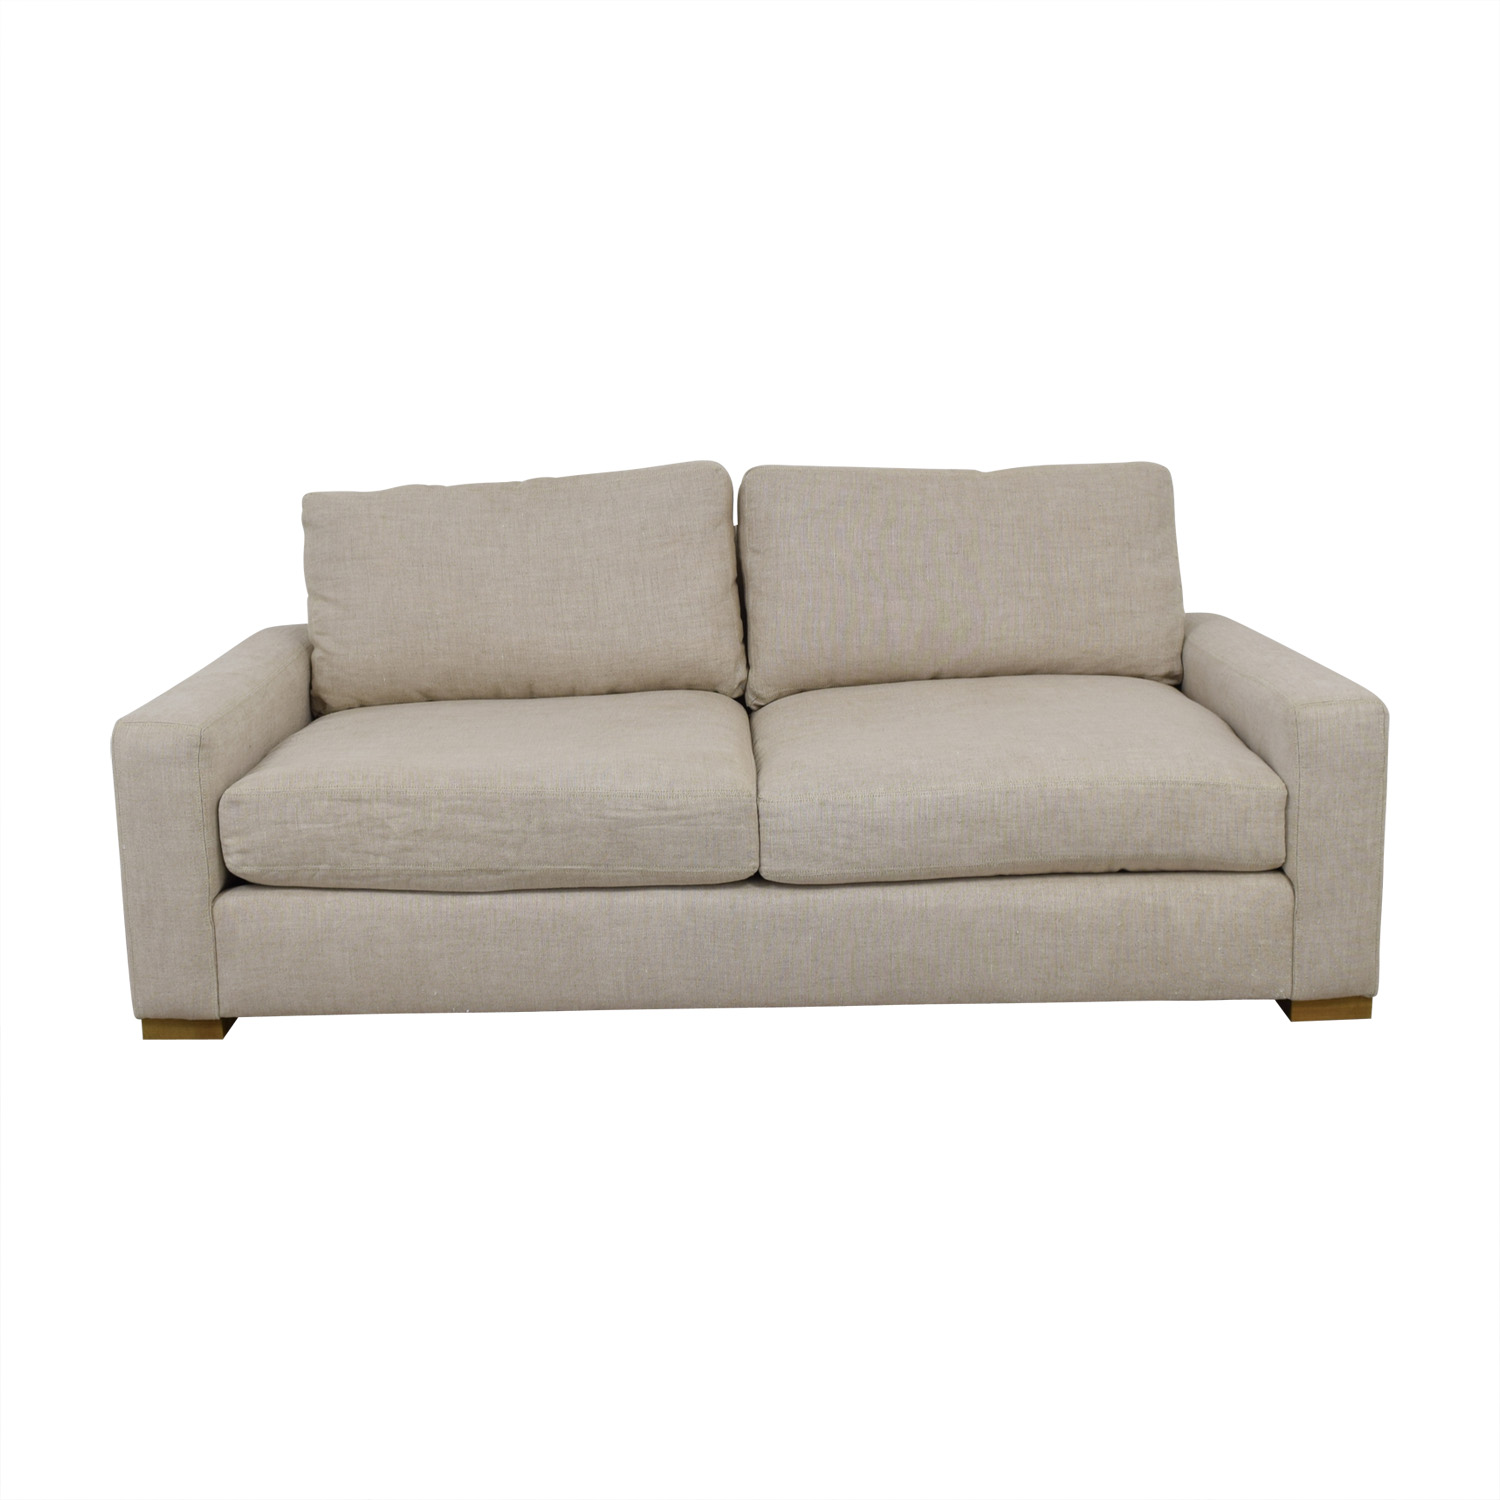 Restoration Hardware Restoration Hardware Maxwell Beige Two-Cushion Sofa